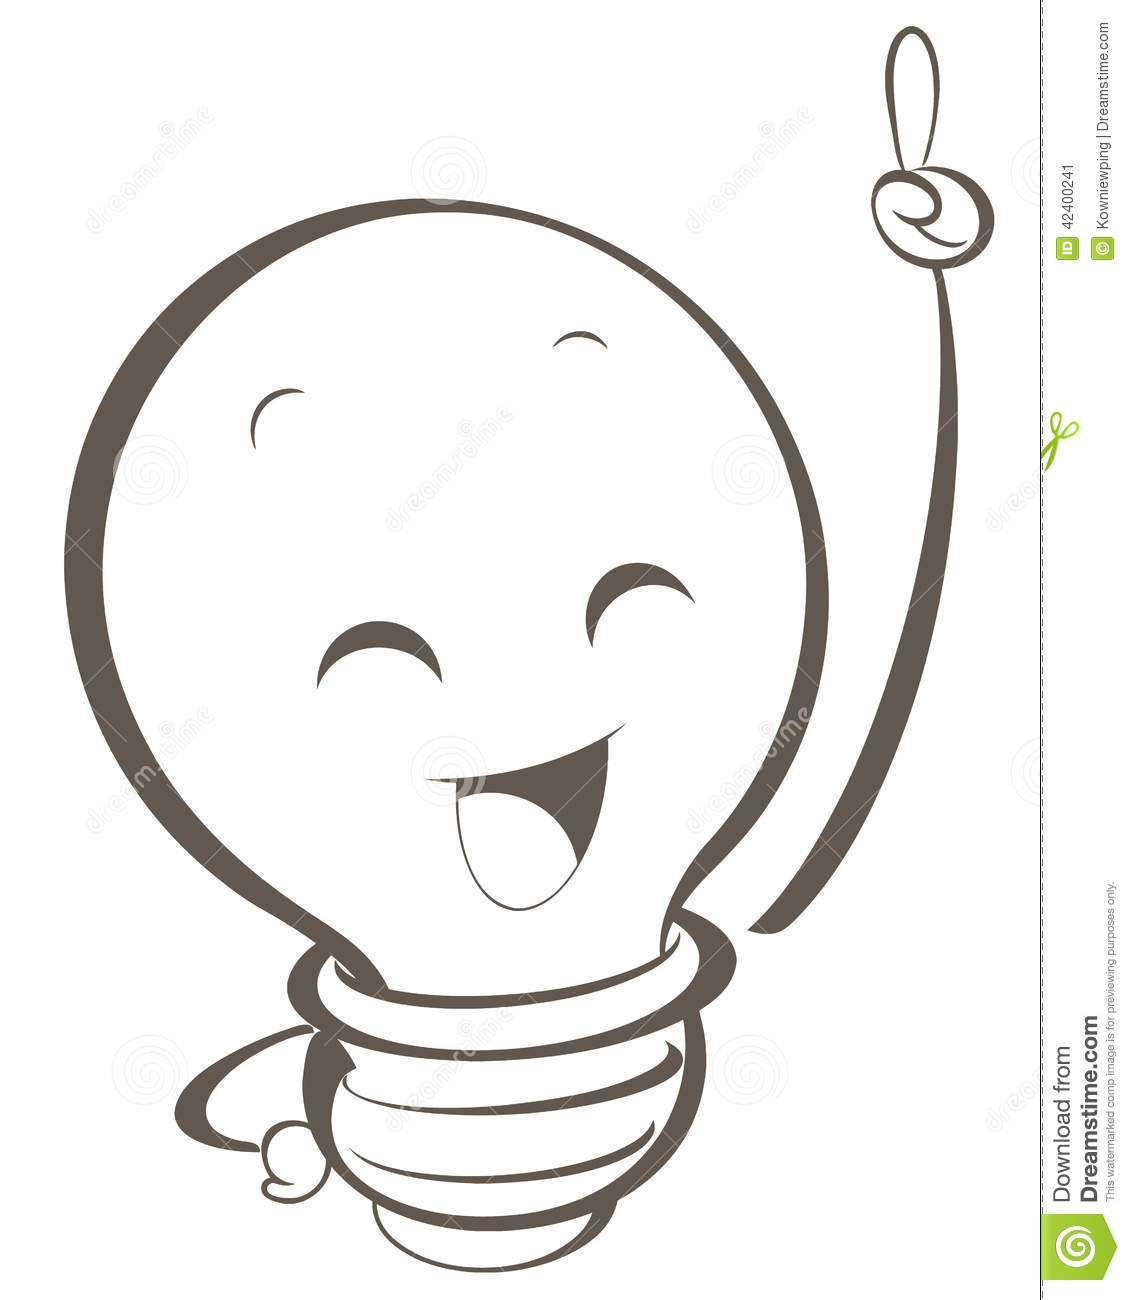 Exellent Smiley Blij Blije 123 E 333022426 With Design Photos as well Smile t Shirts also Emoticon Bouche Main 35410448 in addition Whoosh further Stock Illustration Frightened Emoticon With Open Mouth. on cartoon smiley mouth